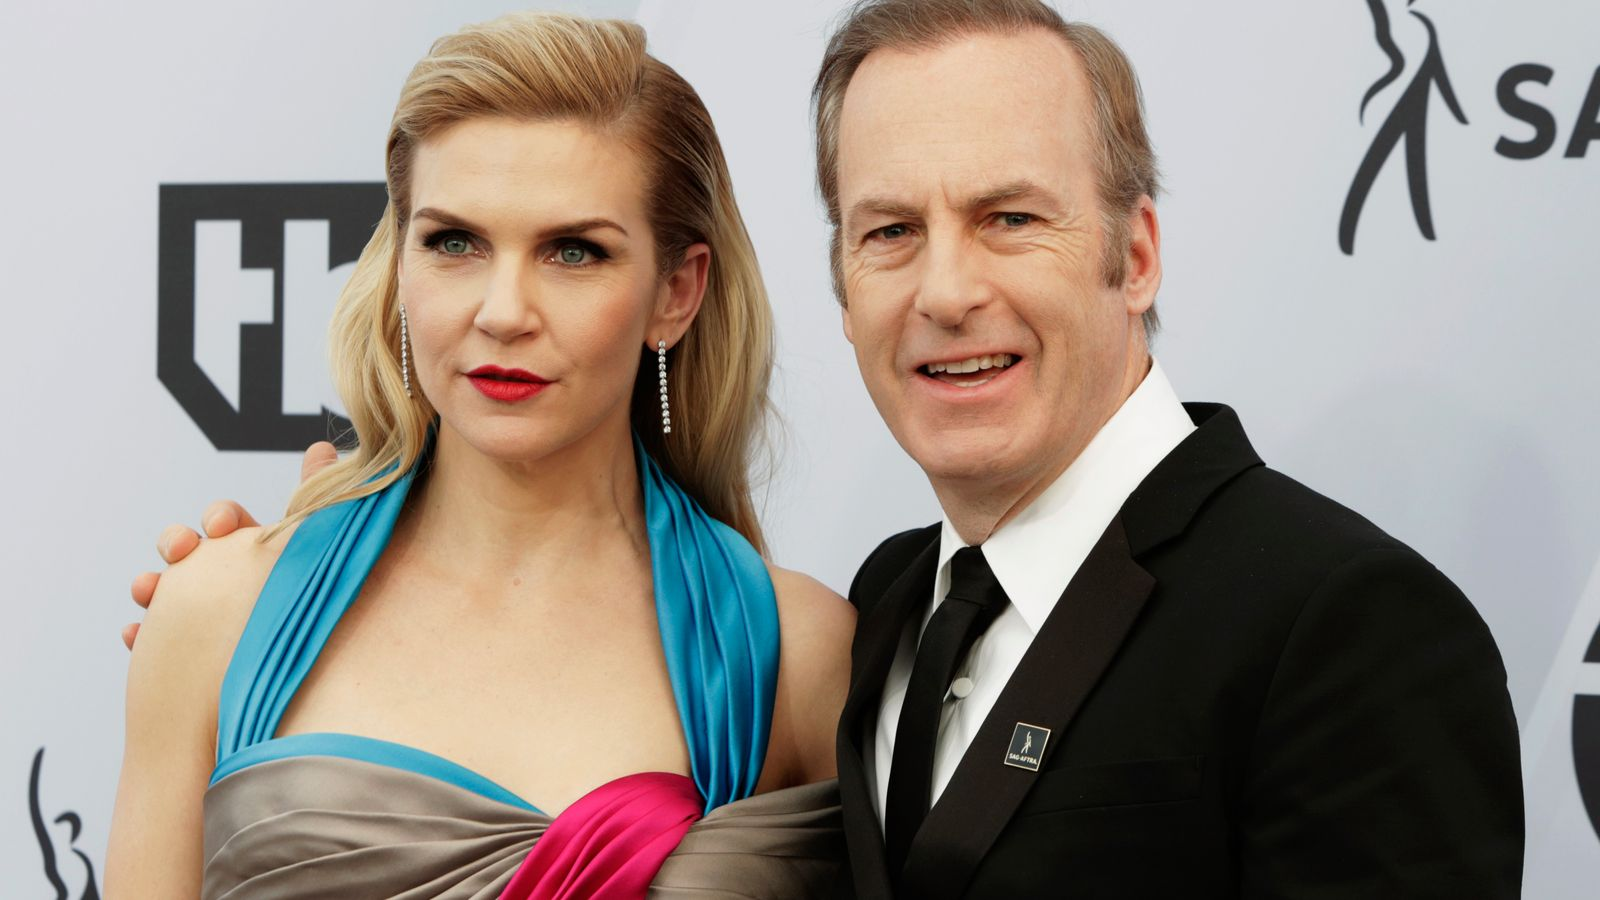 Bob Odenkirk: Better Call Saul star says he had 'small heart attack' but will be 'back soon'